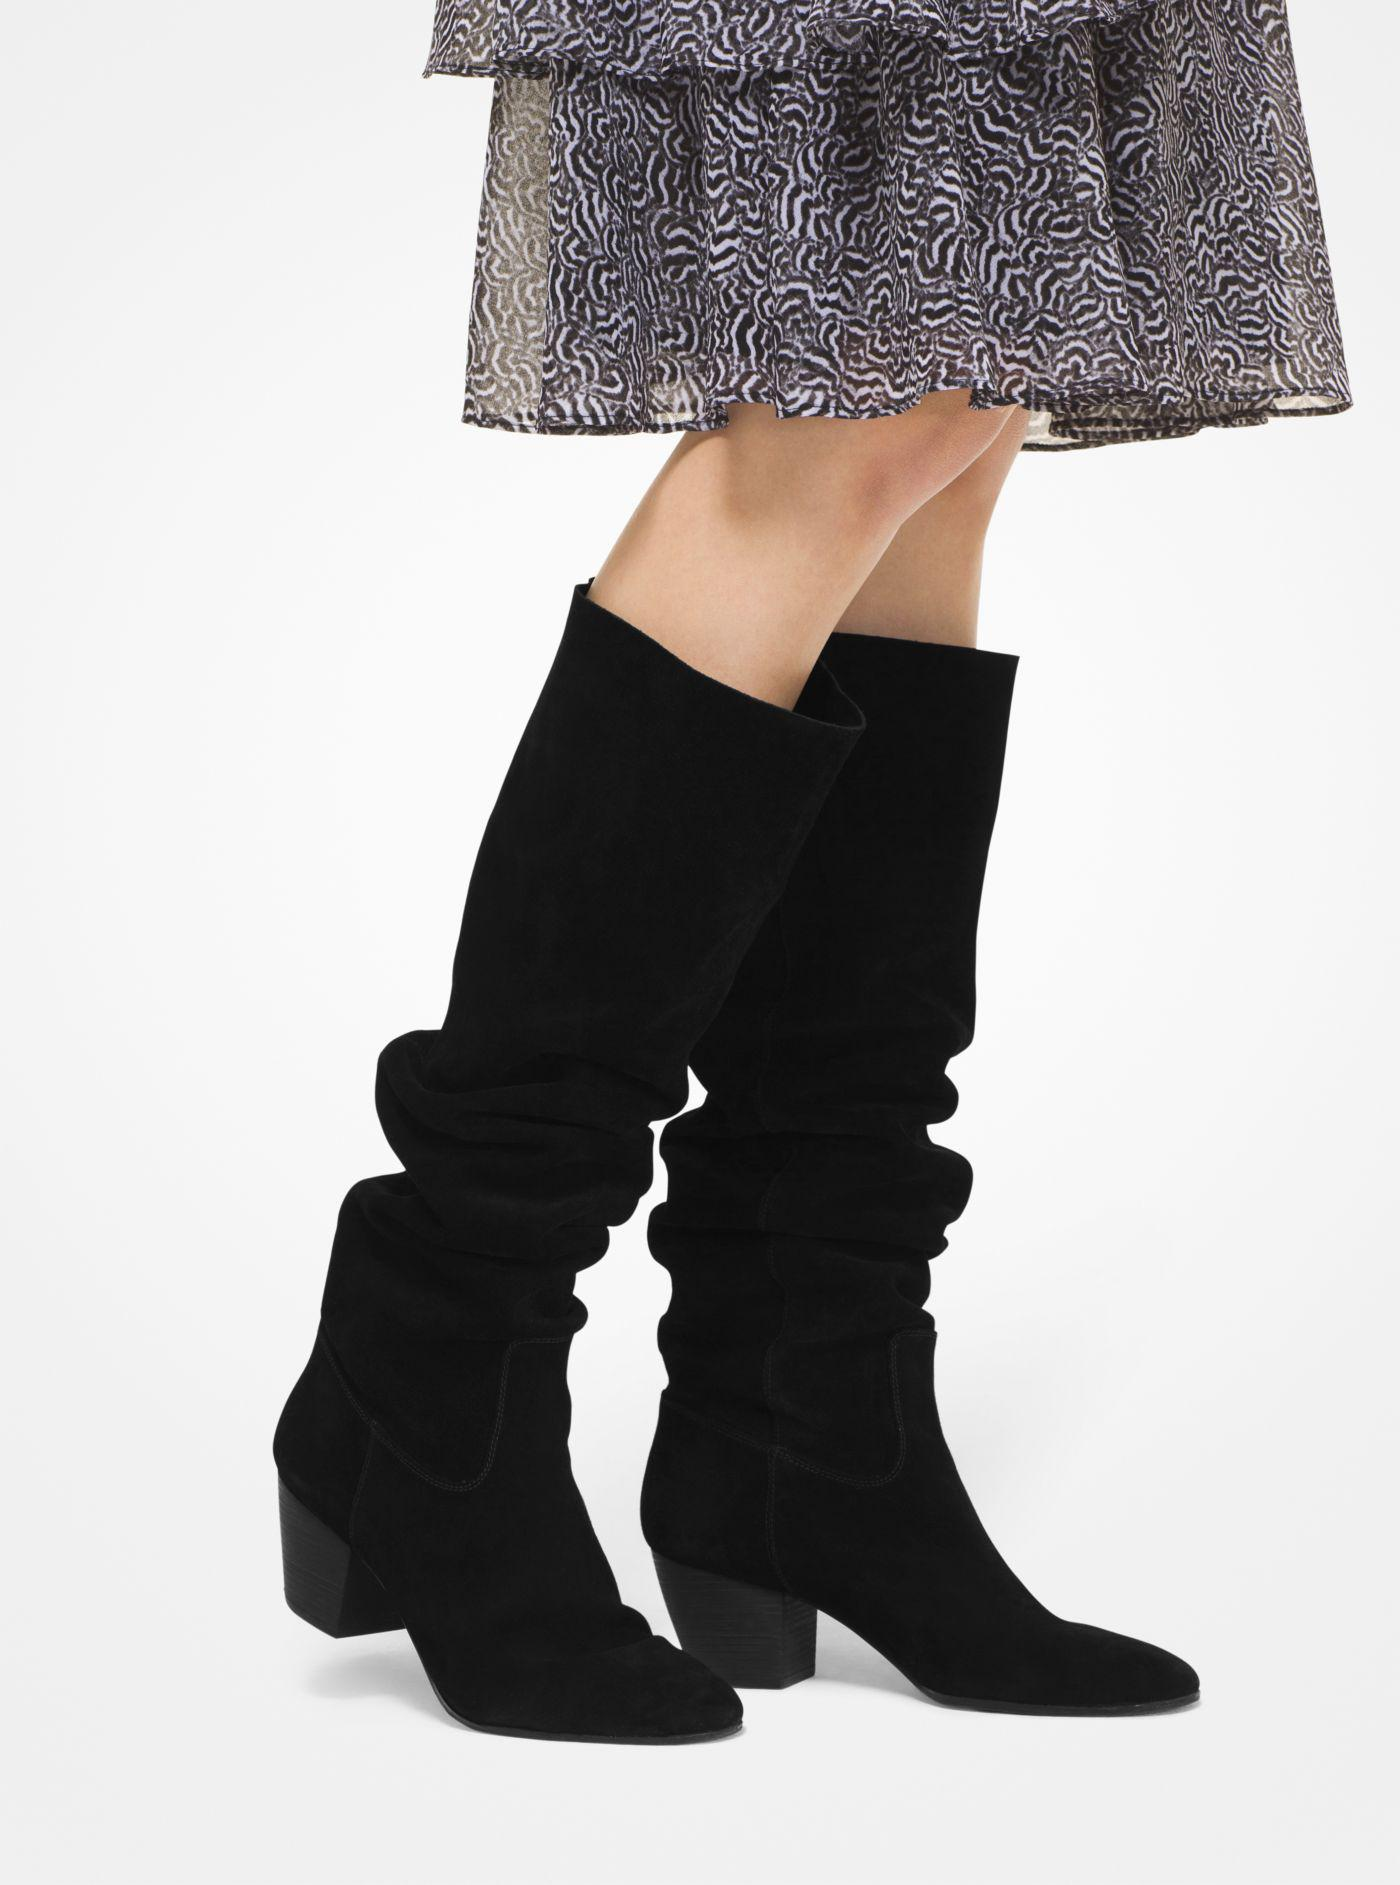 Michael Kors Avery Suede Boot in Black